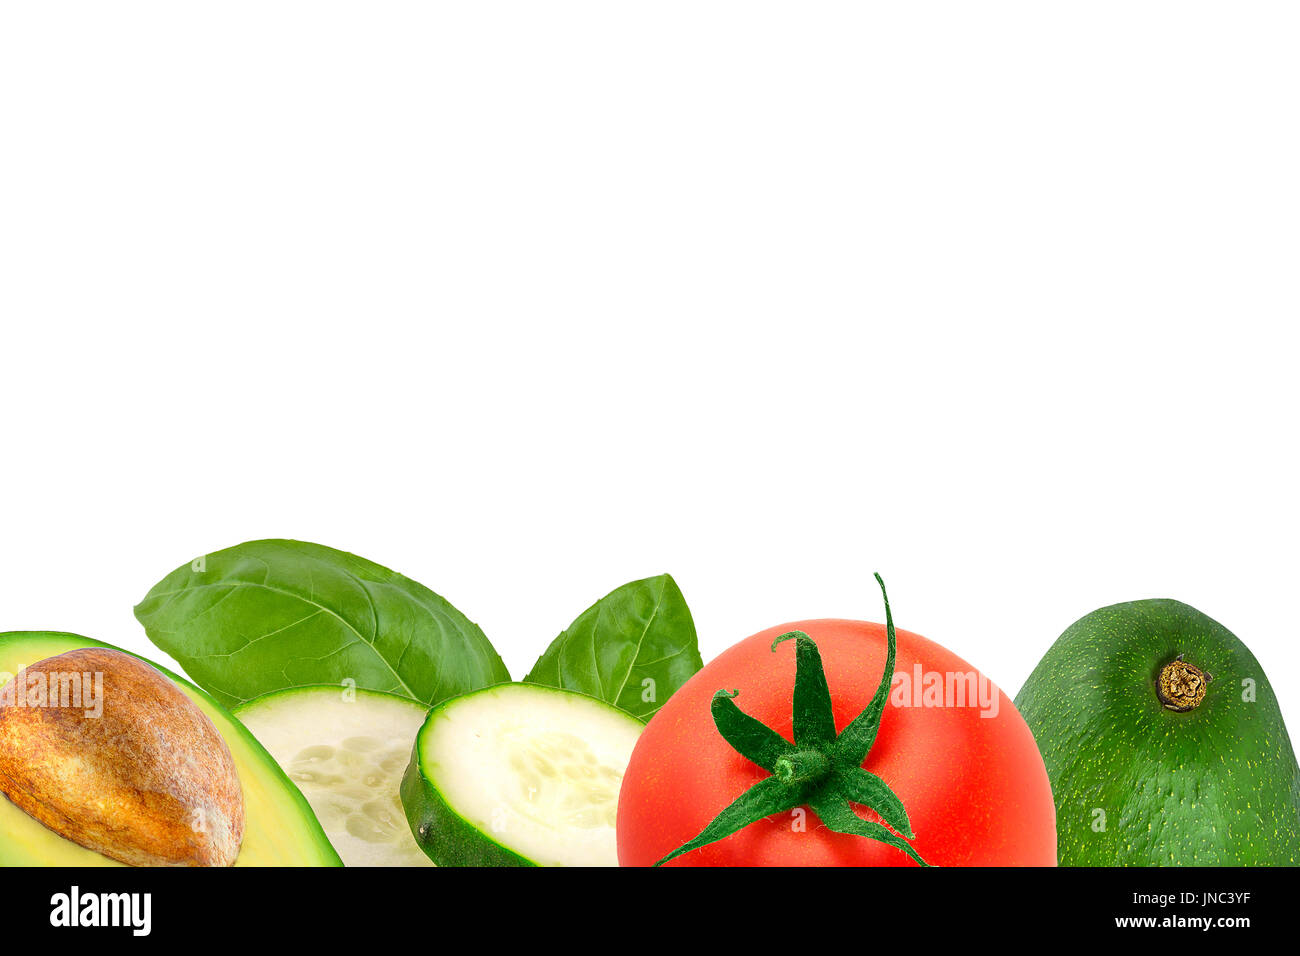 fruits vegetables border stockfotos fruits vegetables border bilder alamy. Black Bedroom Furniture Sets. Home Design Ideas